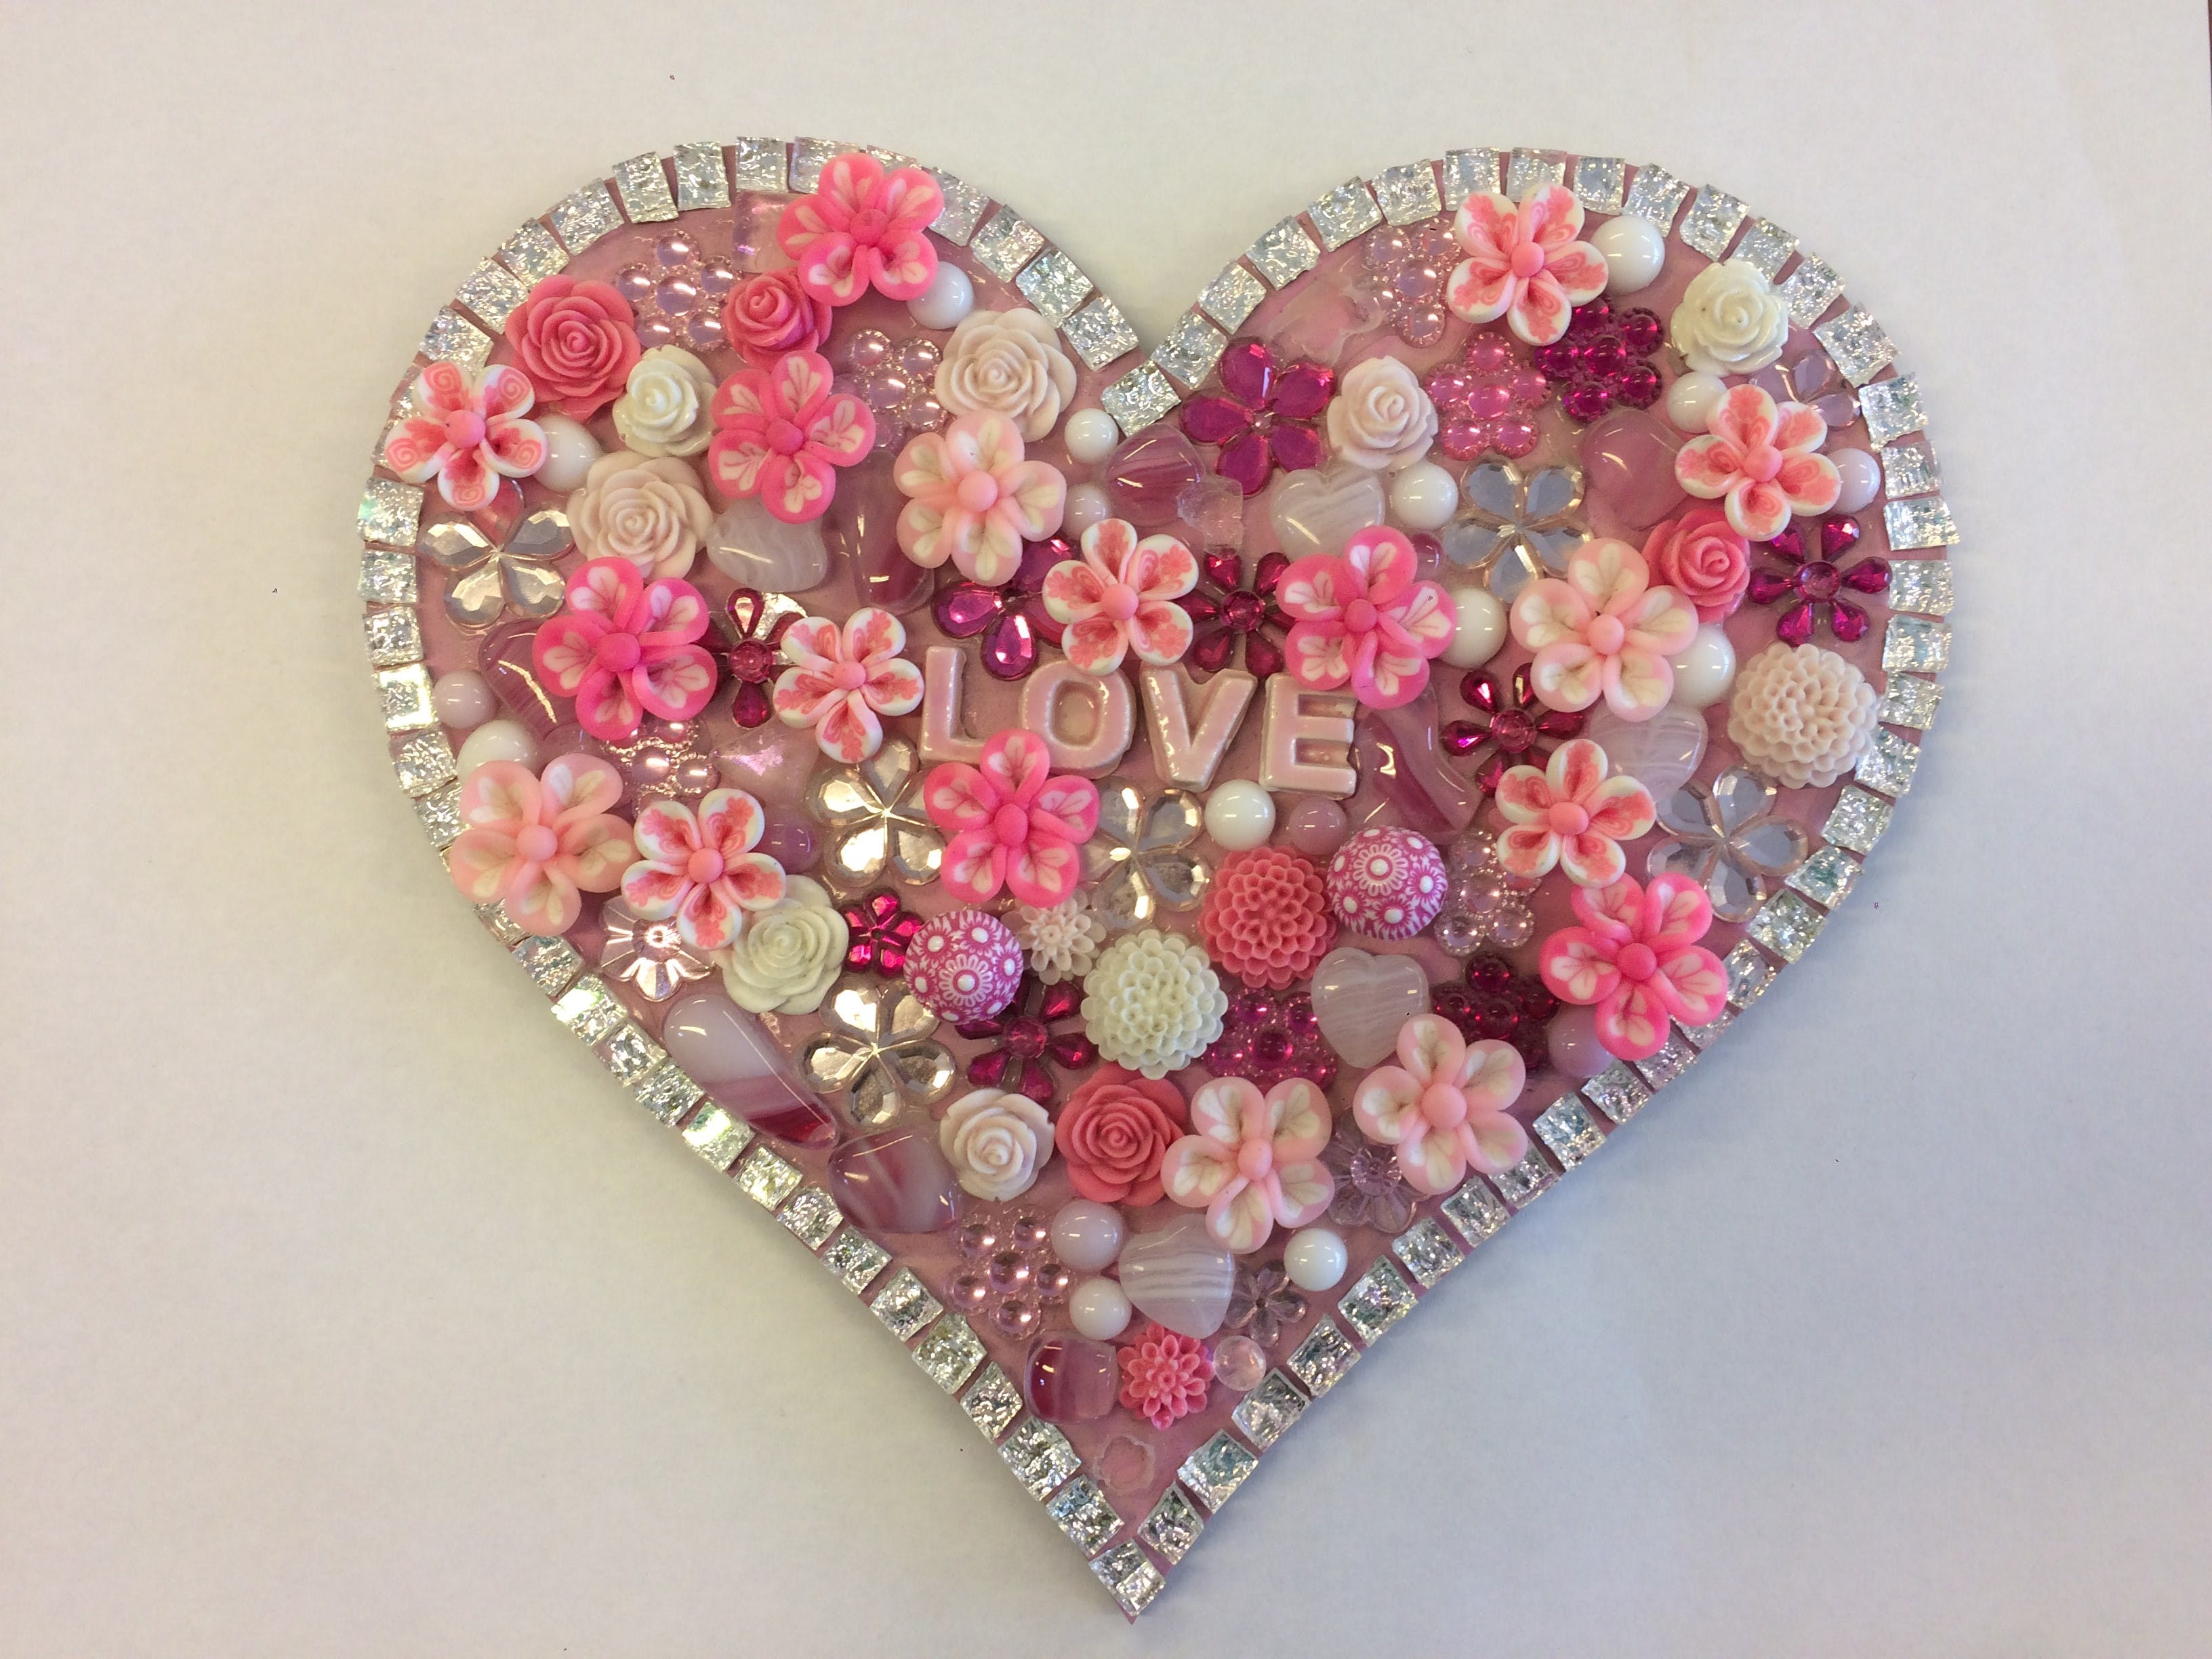 Flowers and Bling Mosaic Class for Kids - Hotel Accommodation